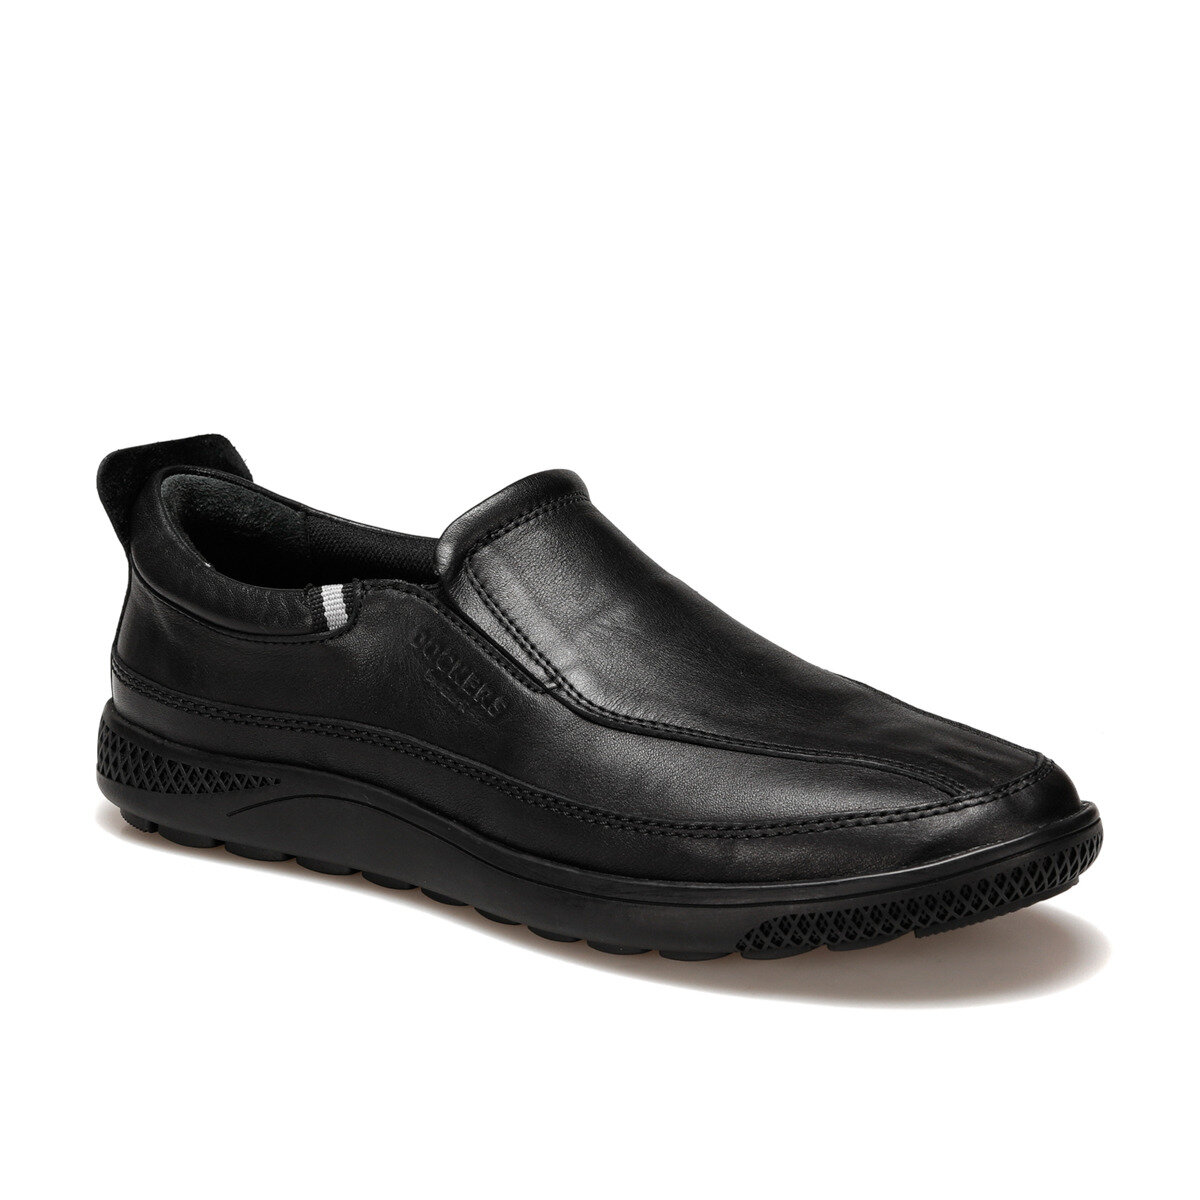 FLO 228281 Black Men 'S Comfort Shoes By Dockers The Gerle